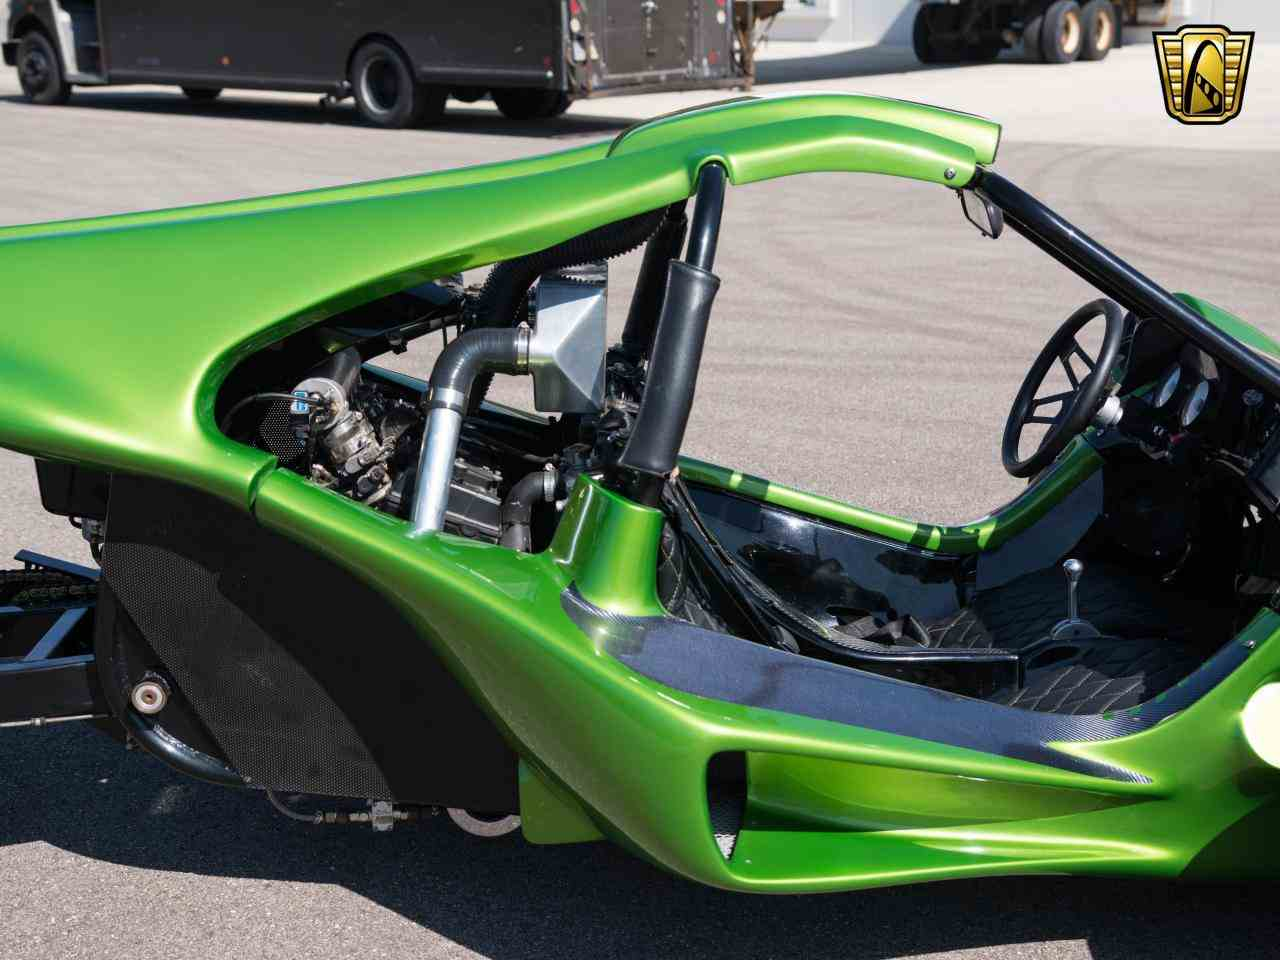 Large Picture of 2008 Kawasaki T-Rex Replica located in Kenosha Wisconsin Offered by Gateway Classic Cars - Milwaukee - L7NA